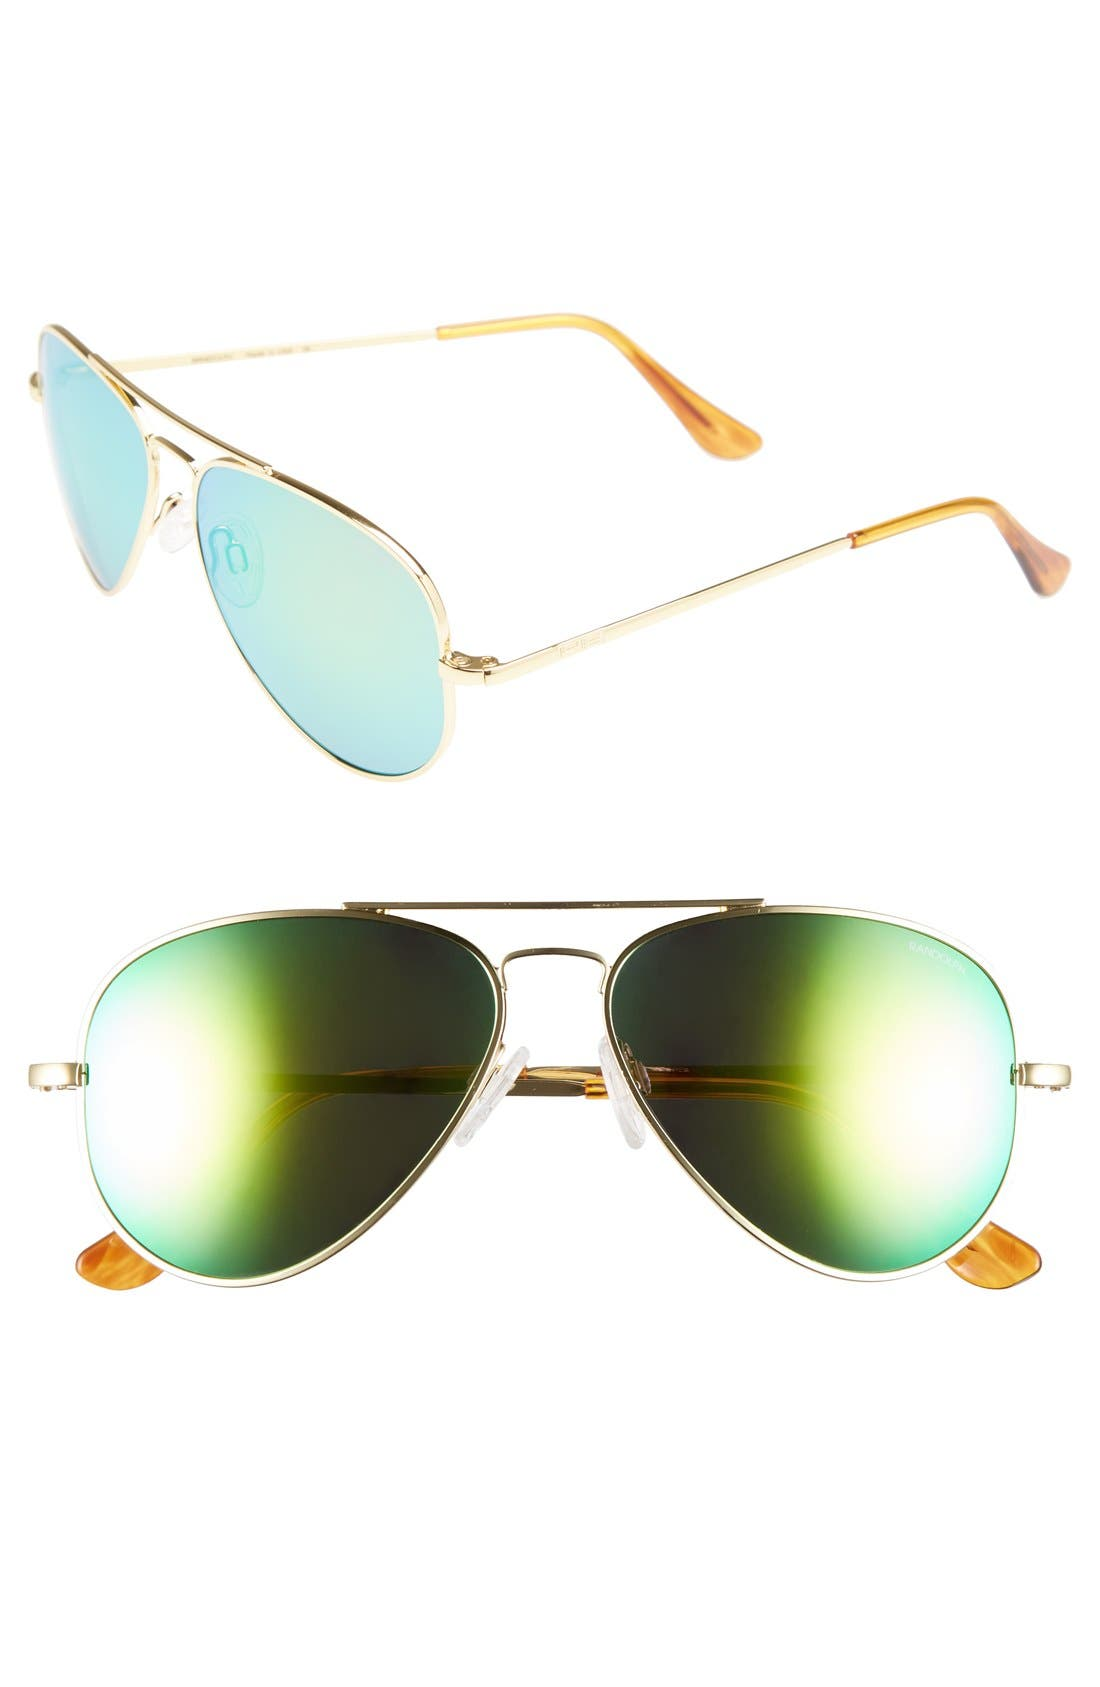 RANDOLPH ENGINEERING Concorde - Flash 57mm Aviator Sunglasses